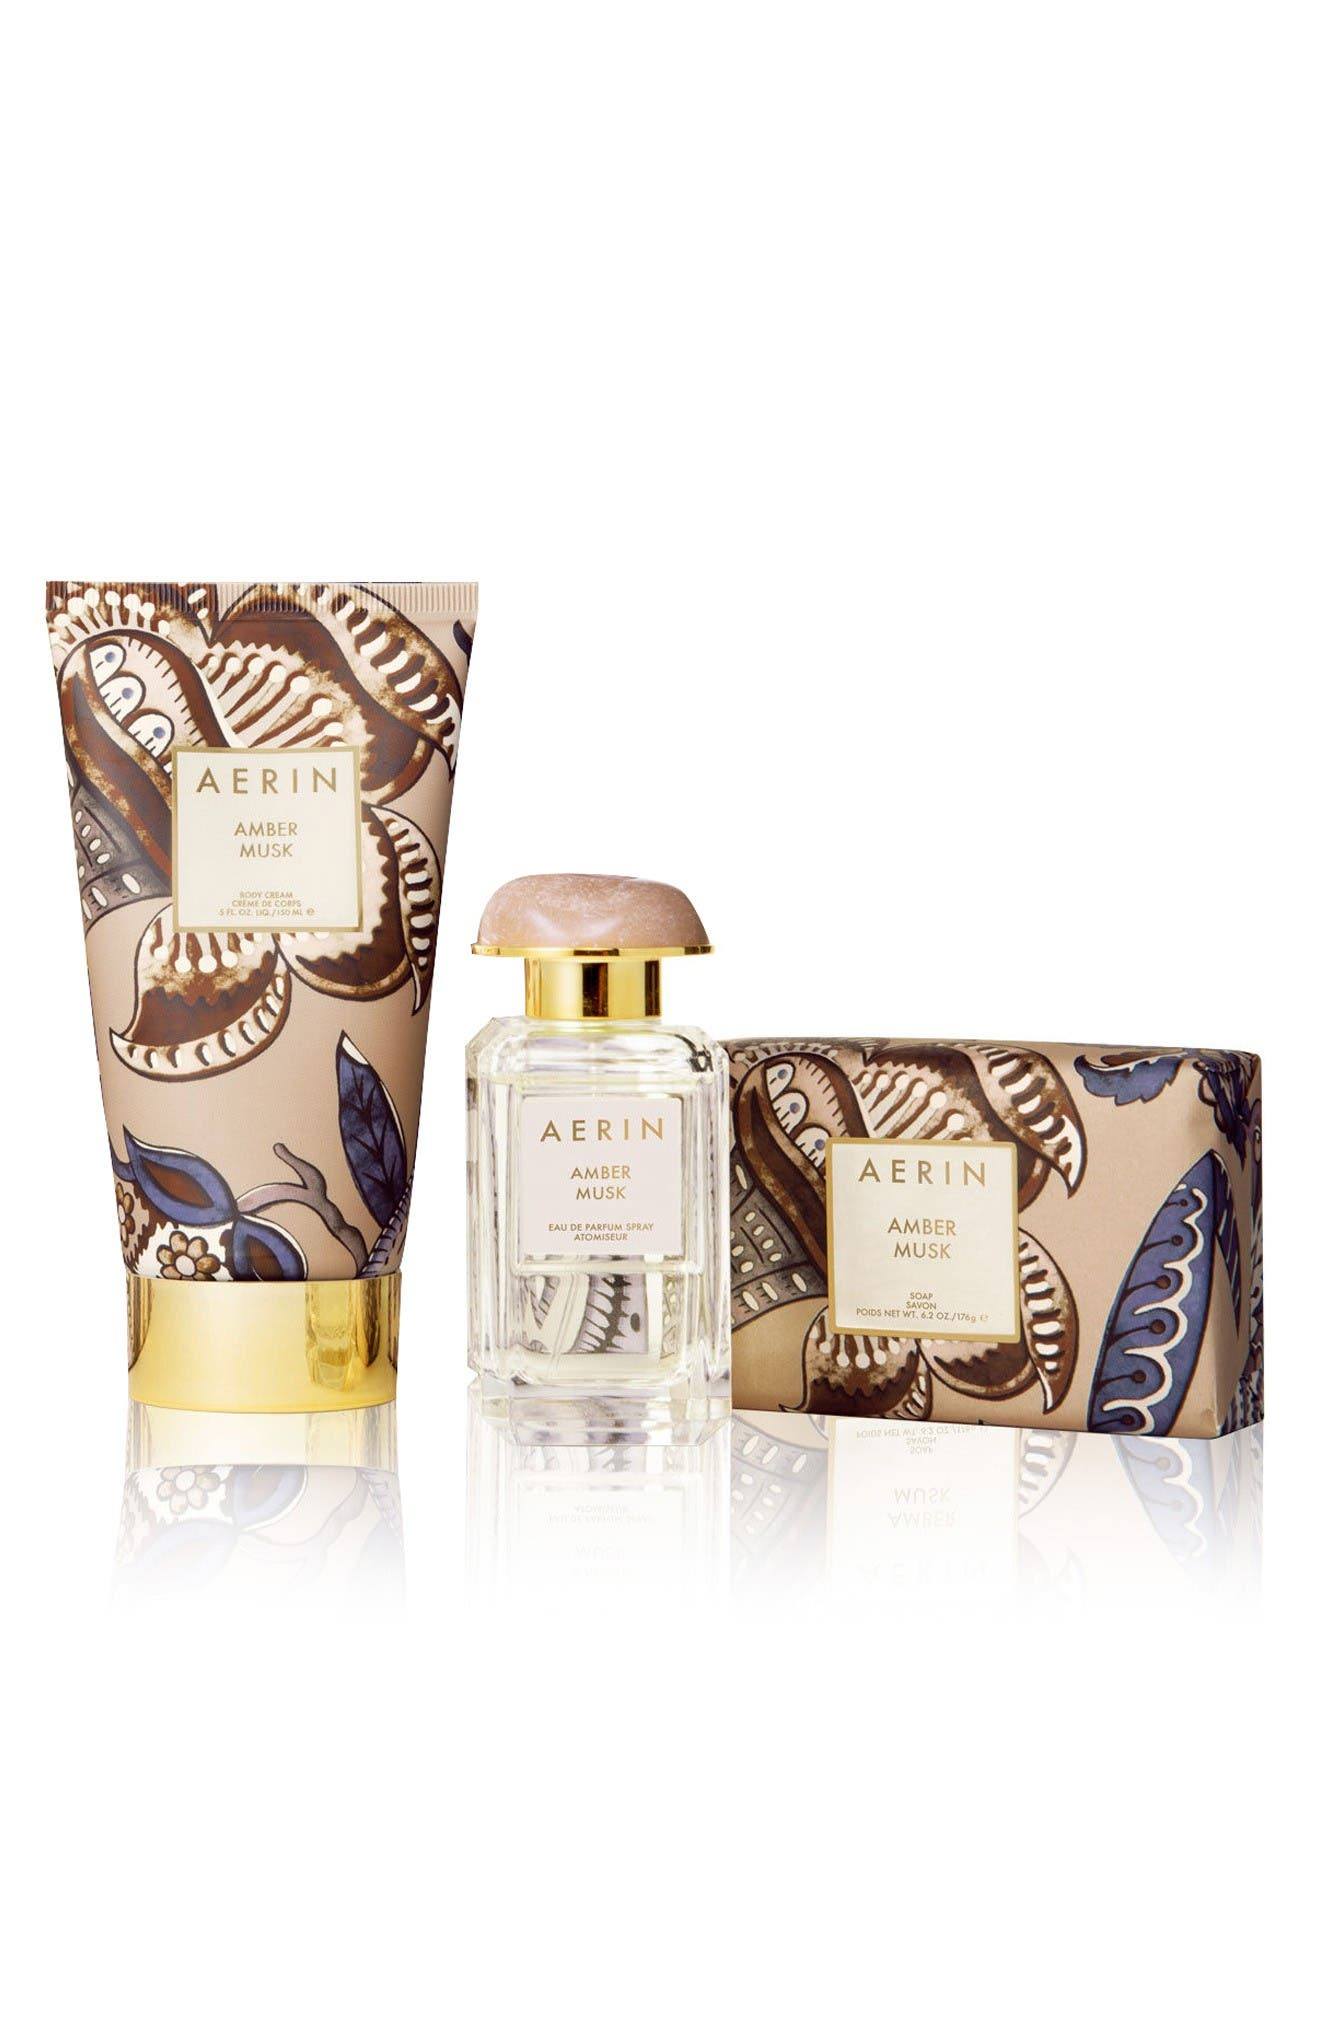 AERIN Beauty Amber Musk Eau de Parfum Collection